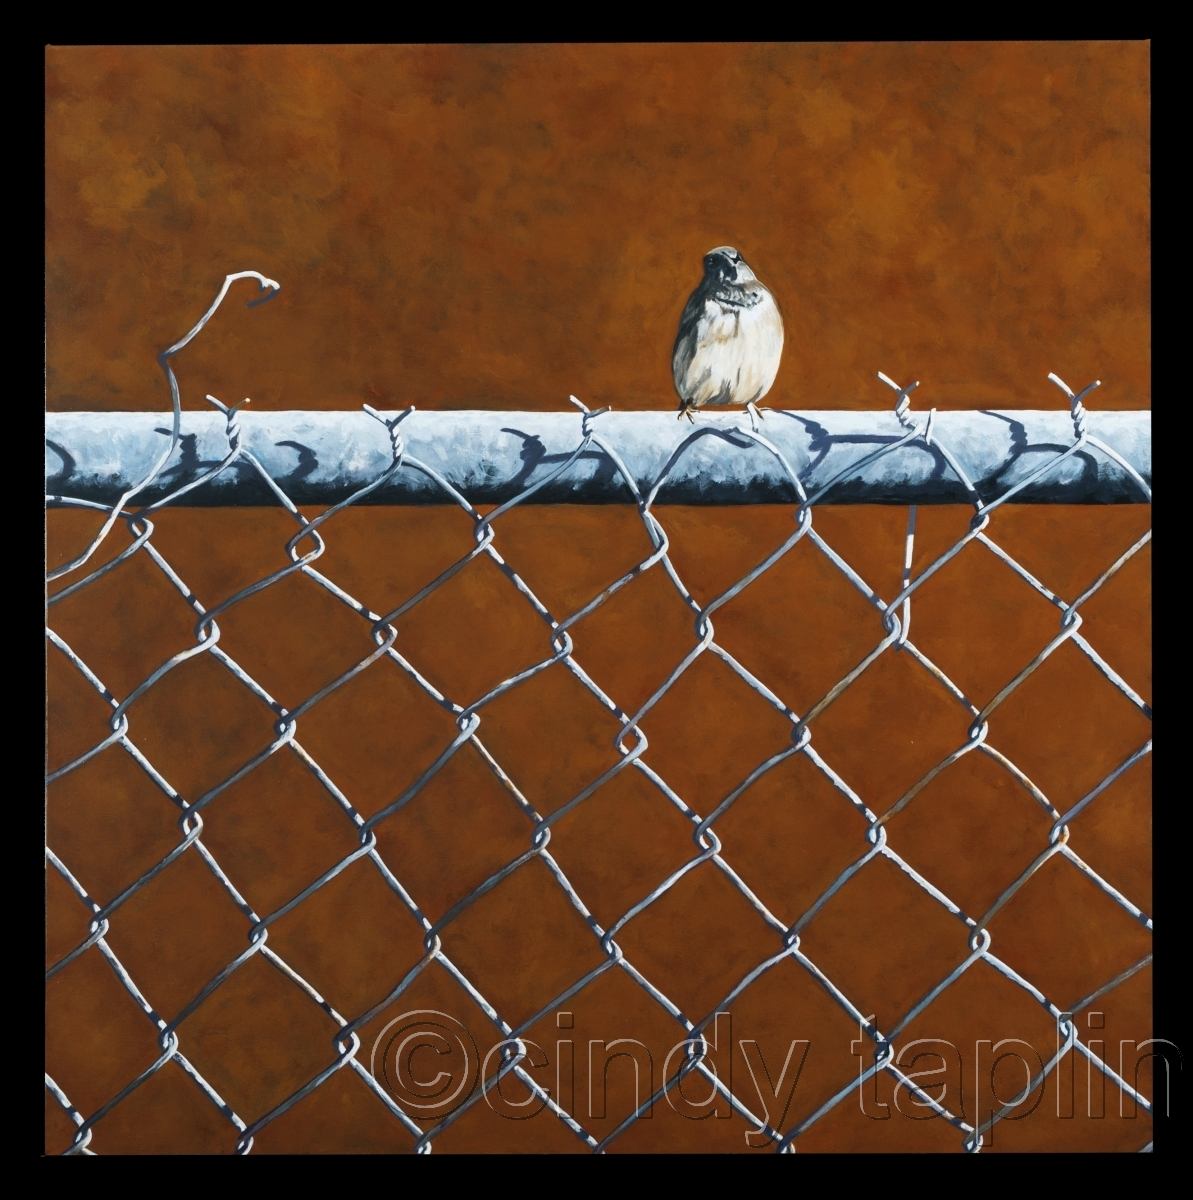 Bird on a chain link fence on a burnt sienna background (large view)